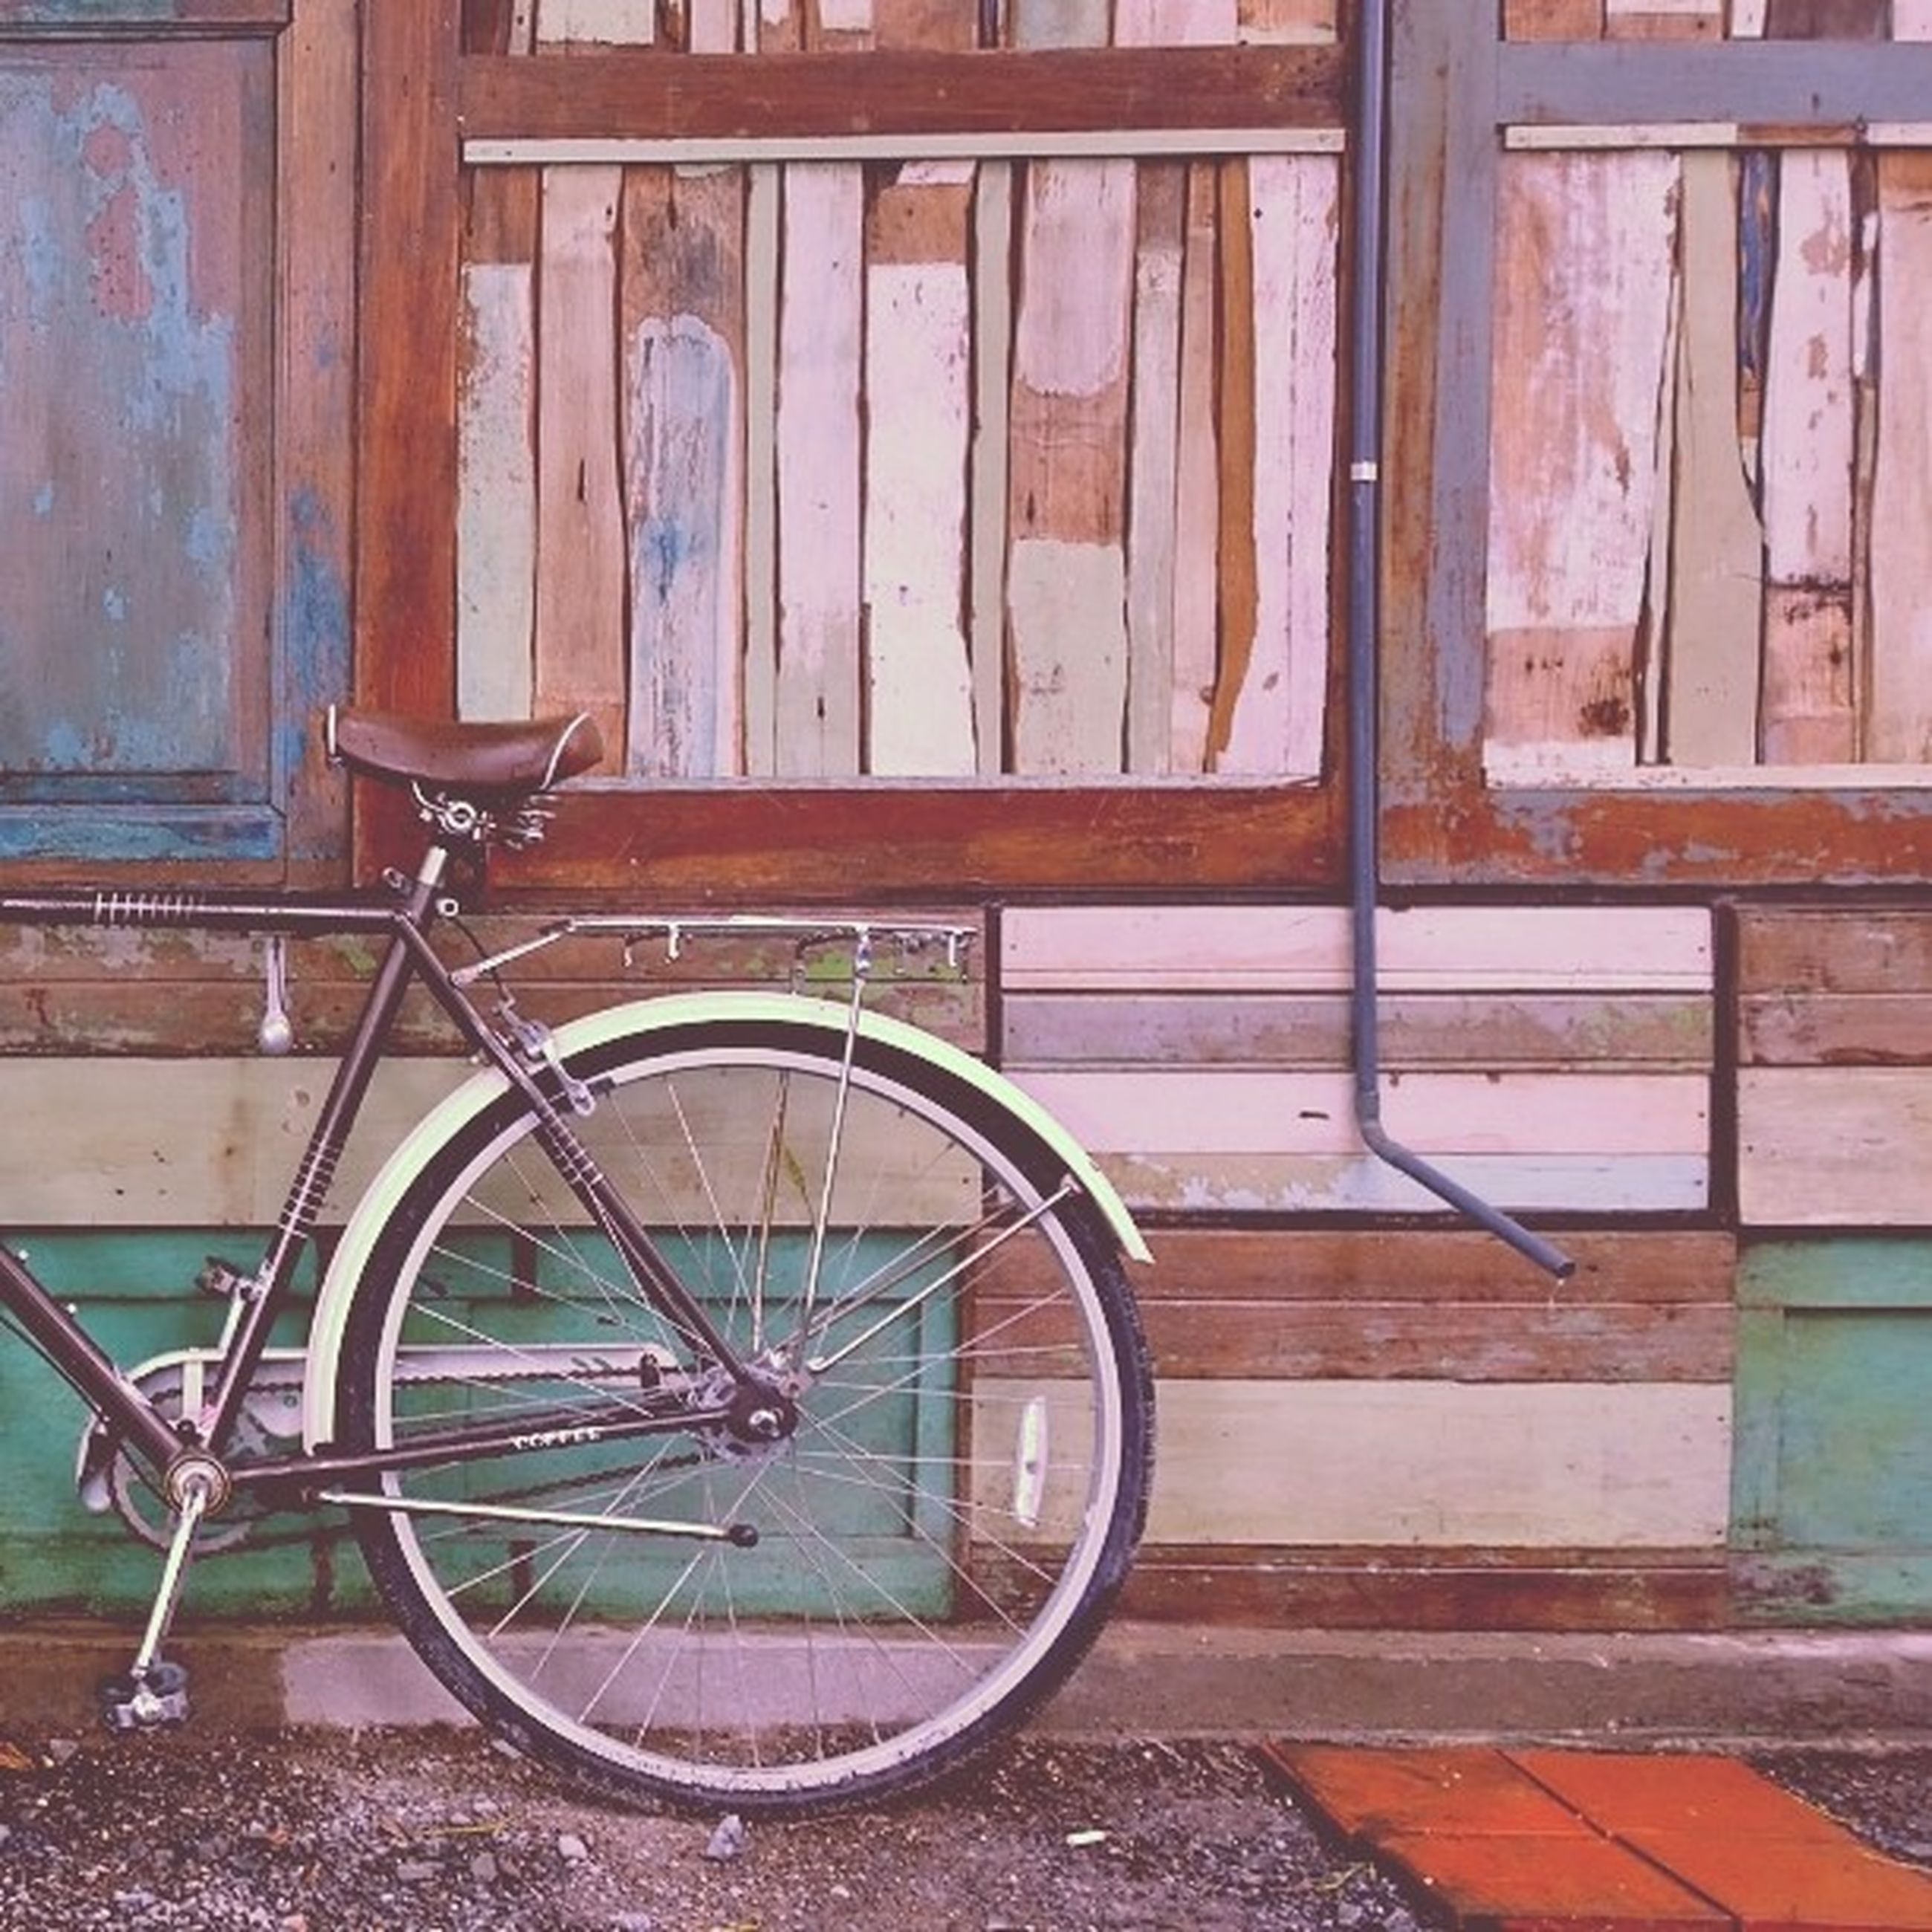 bicycle, built structure, wood - material, architecture, building exterior, metal, stationary, old, mode of transport, parked, window, wall - building feature, house, day, door, no people, transportation, wheel, outdoors, wooden